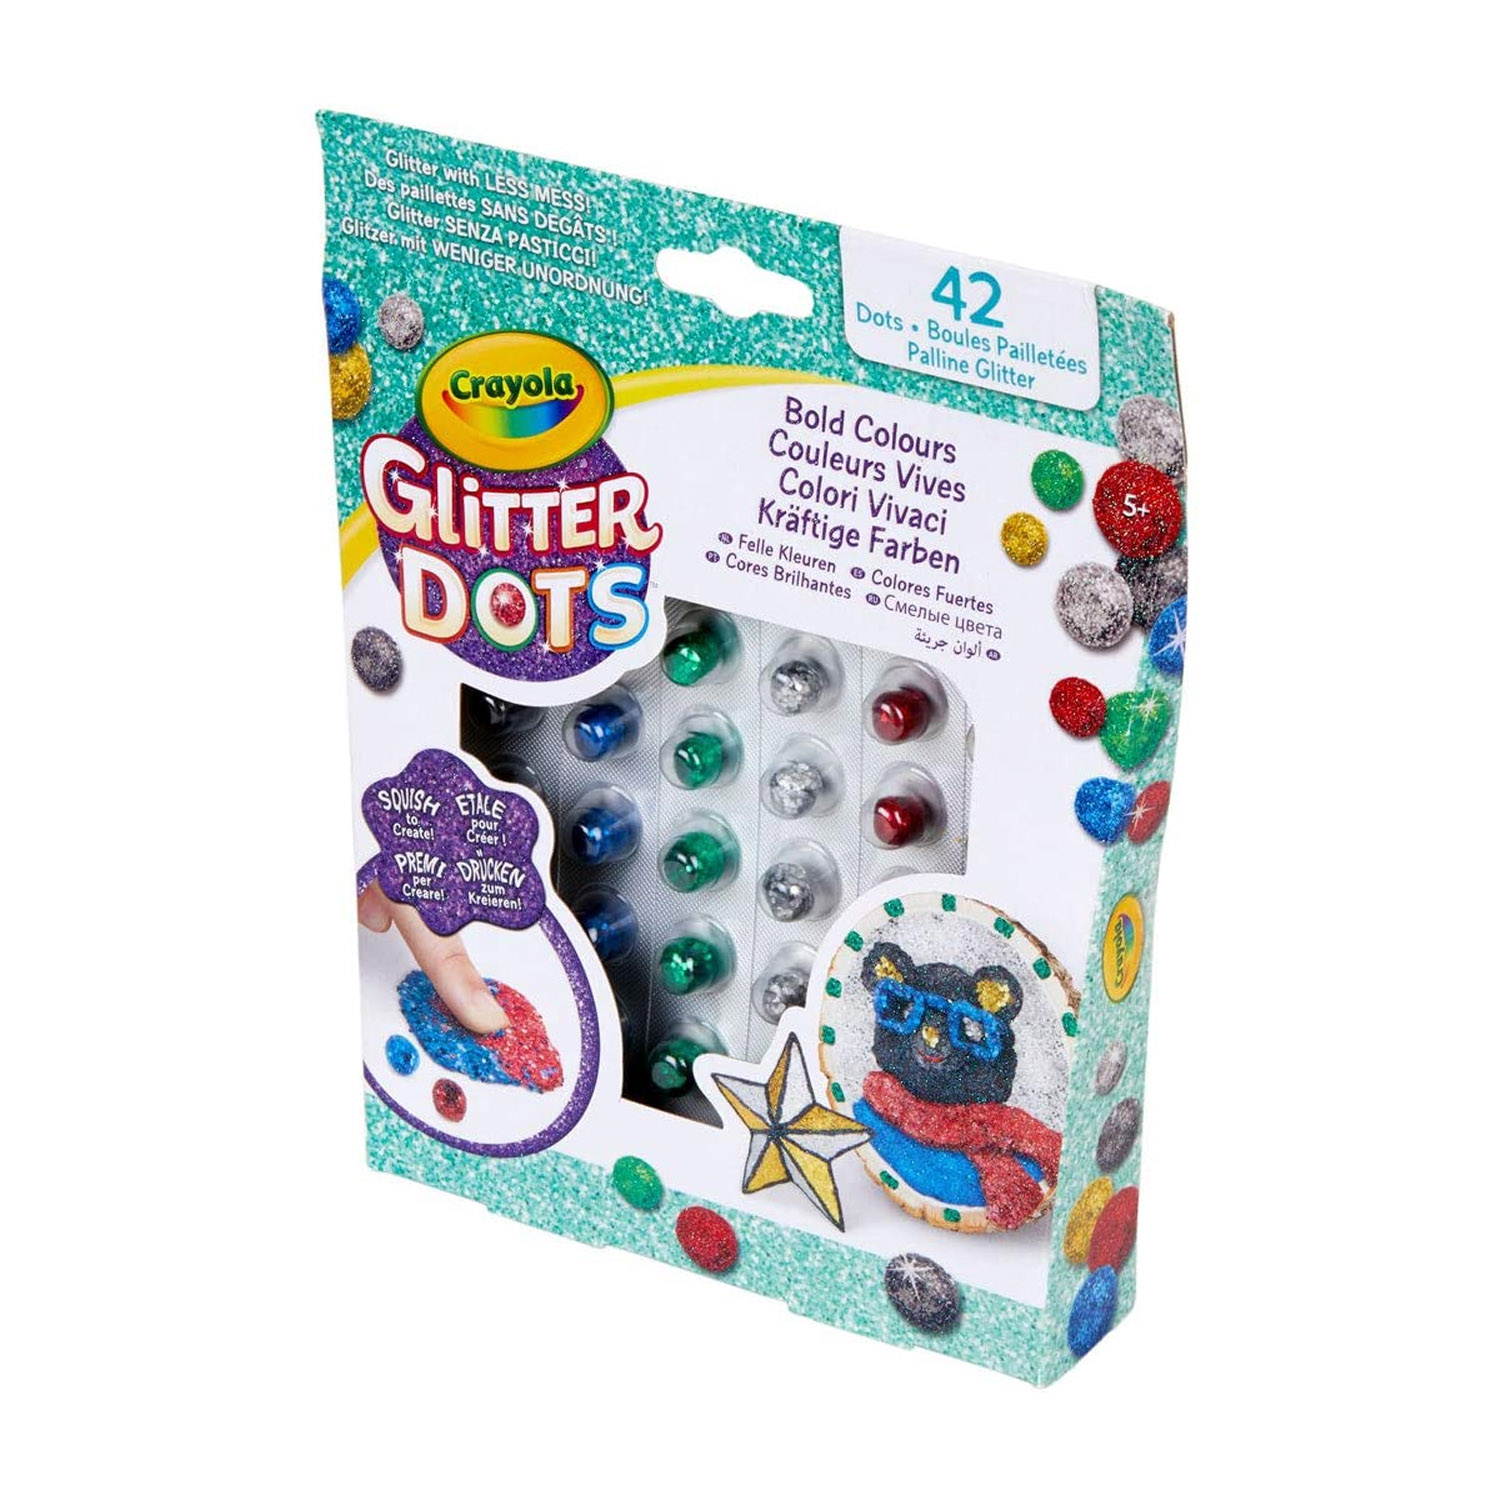 Crayola-Kids-Mouldable-Glitter-Dots-Assortments-OR-Sparkle-Station-Creative-Art thumbnail 7